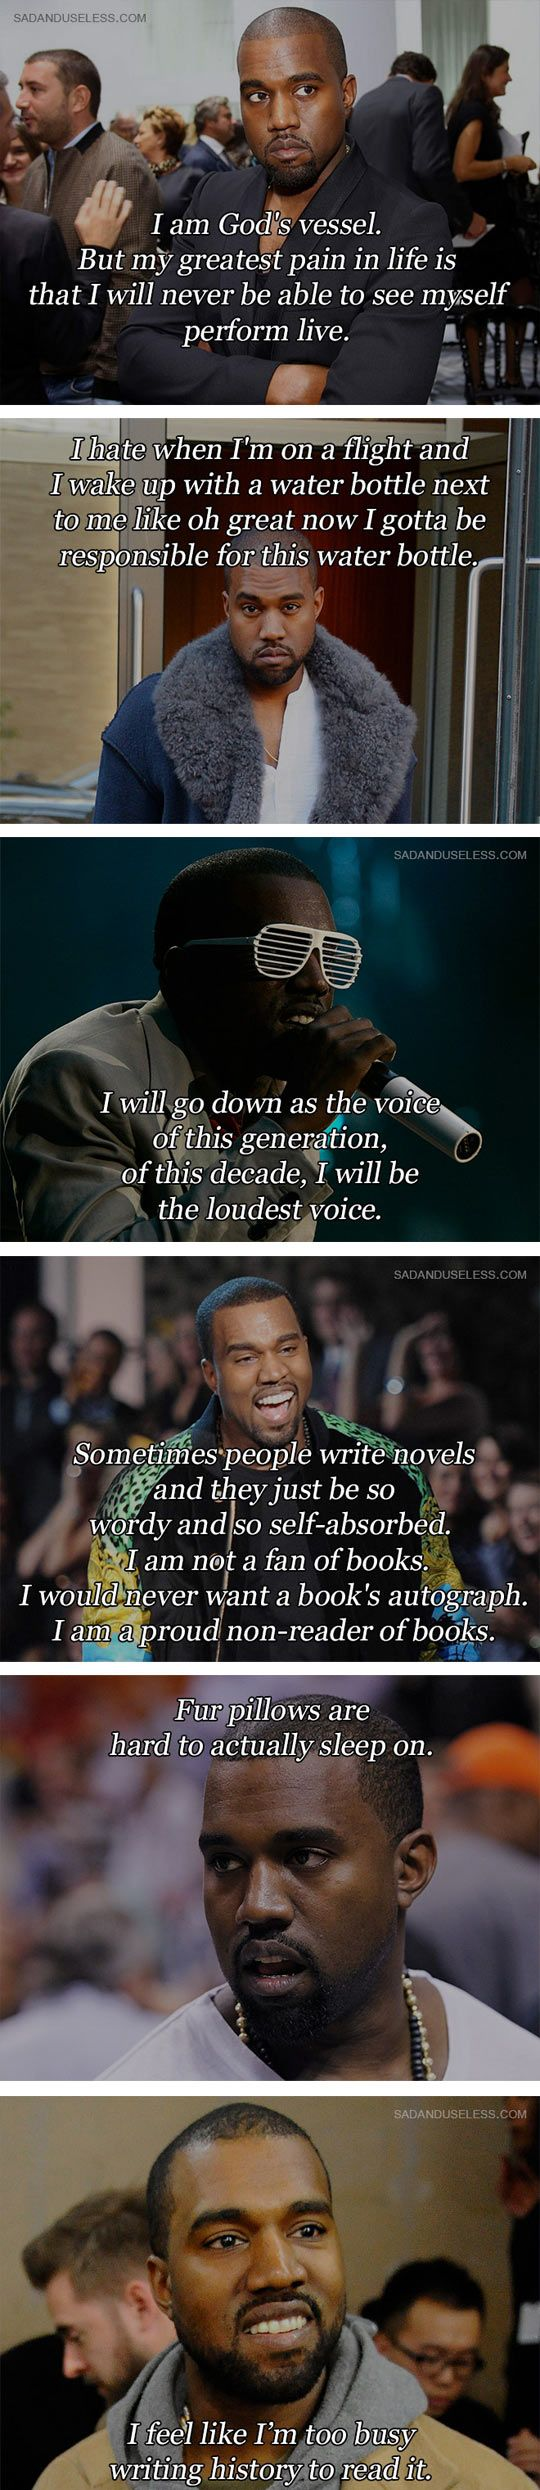 Some Kanye West Quotes <<----- I think a little piece of my soul just died. This is who our rising generation looks up to. *sobs for humanity*